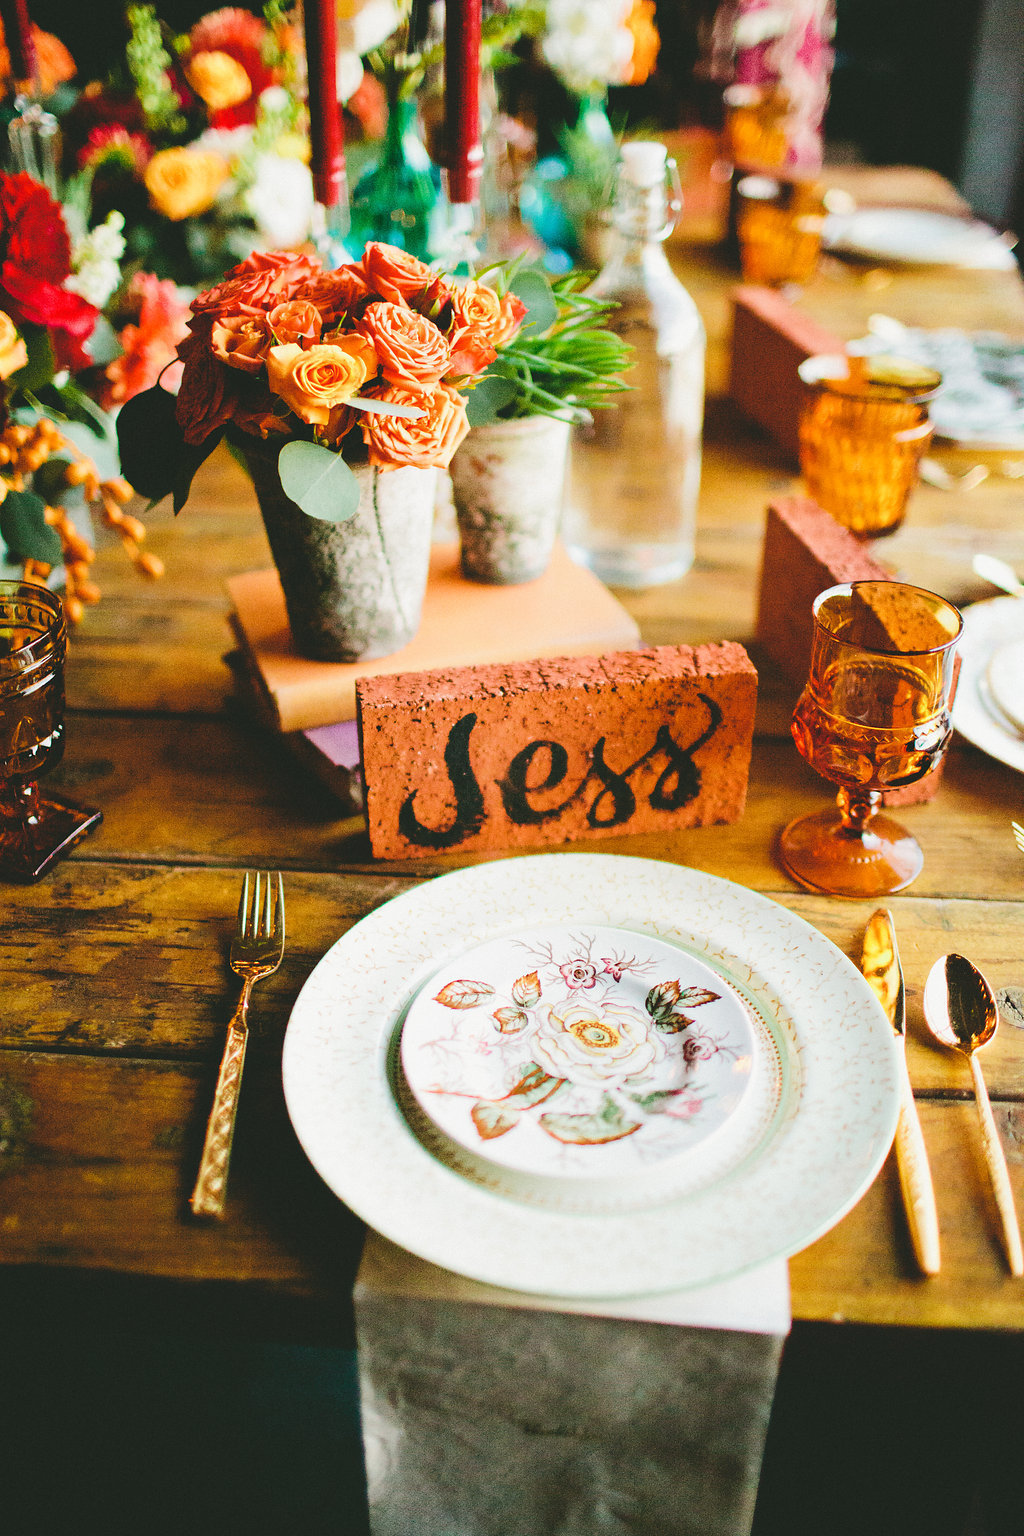 Vintage plate table setting with gold cutlery and hand painted brick name card for casual fall inspired dinner party with Local Table